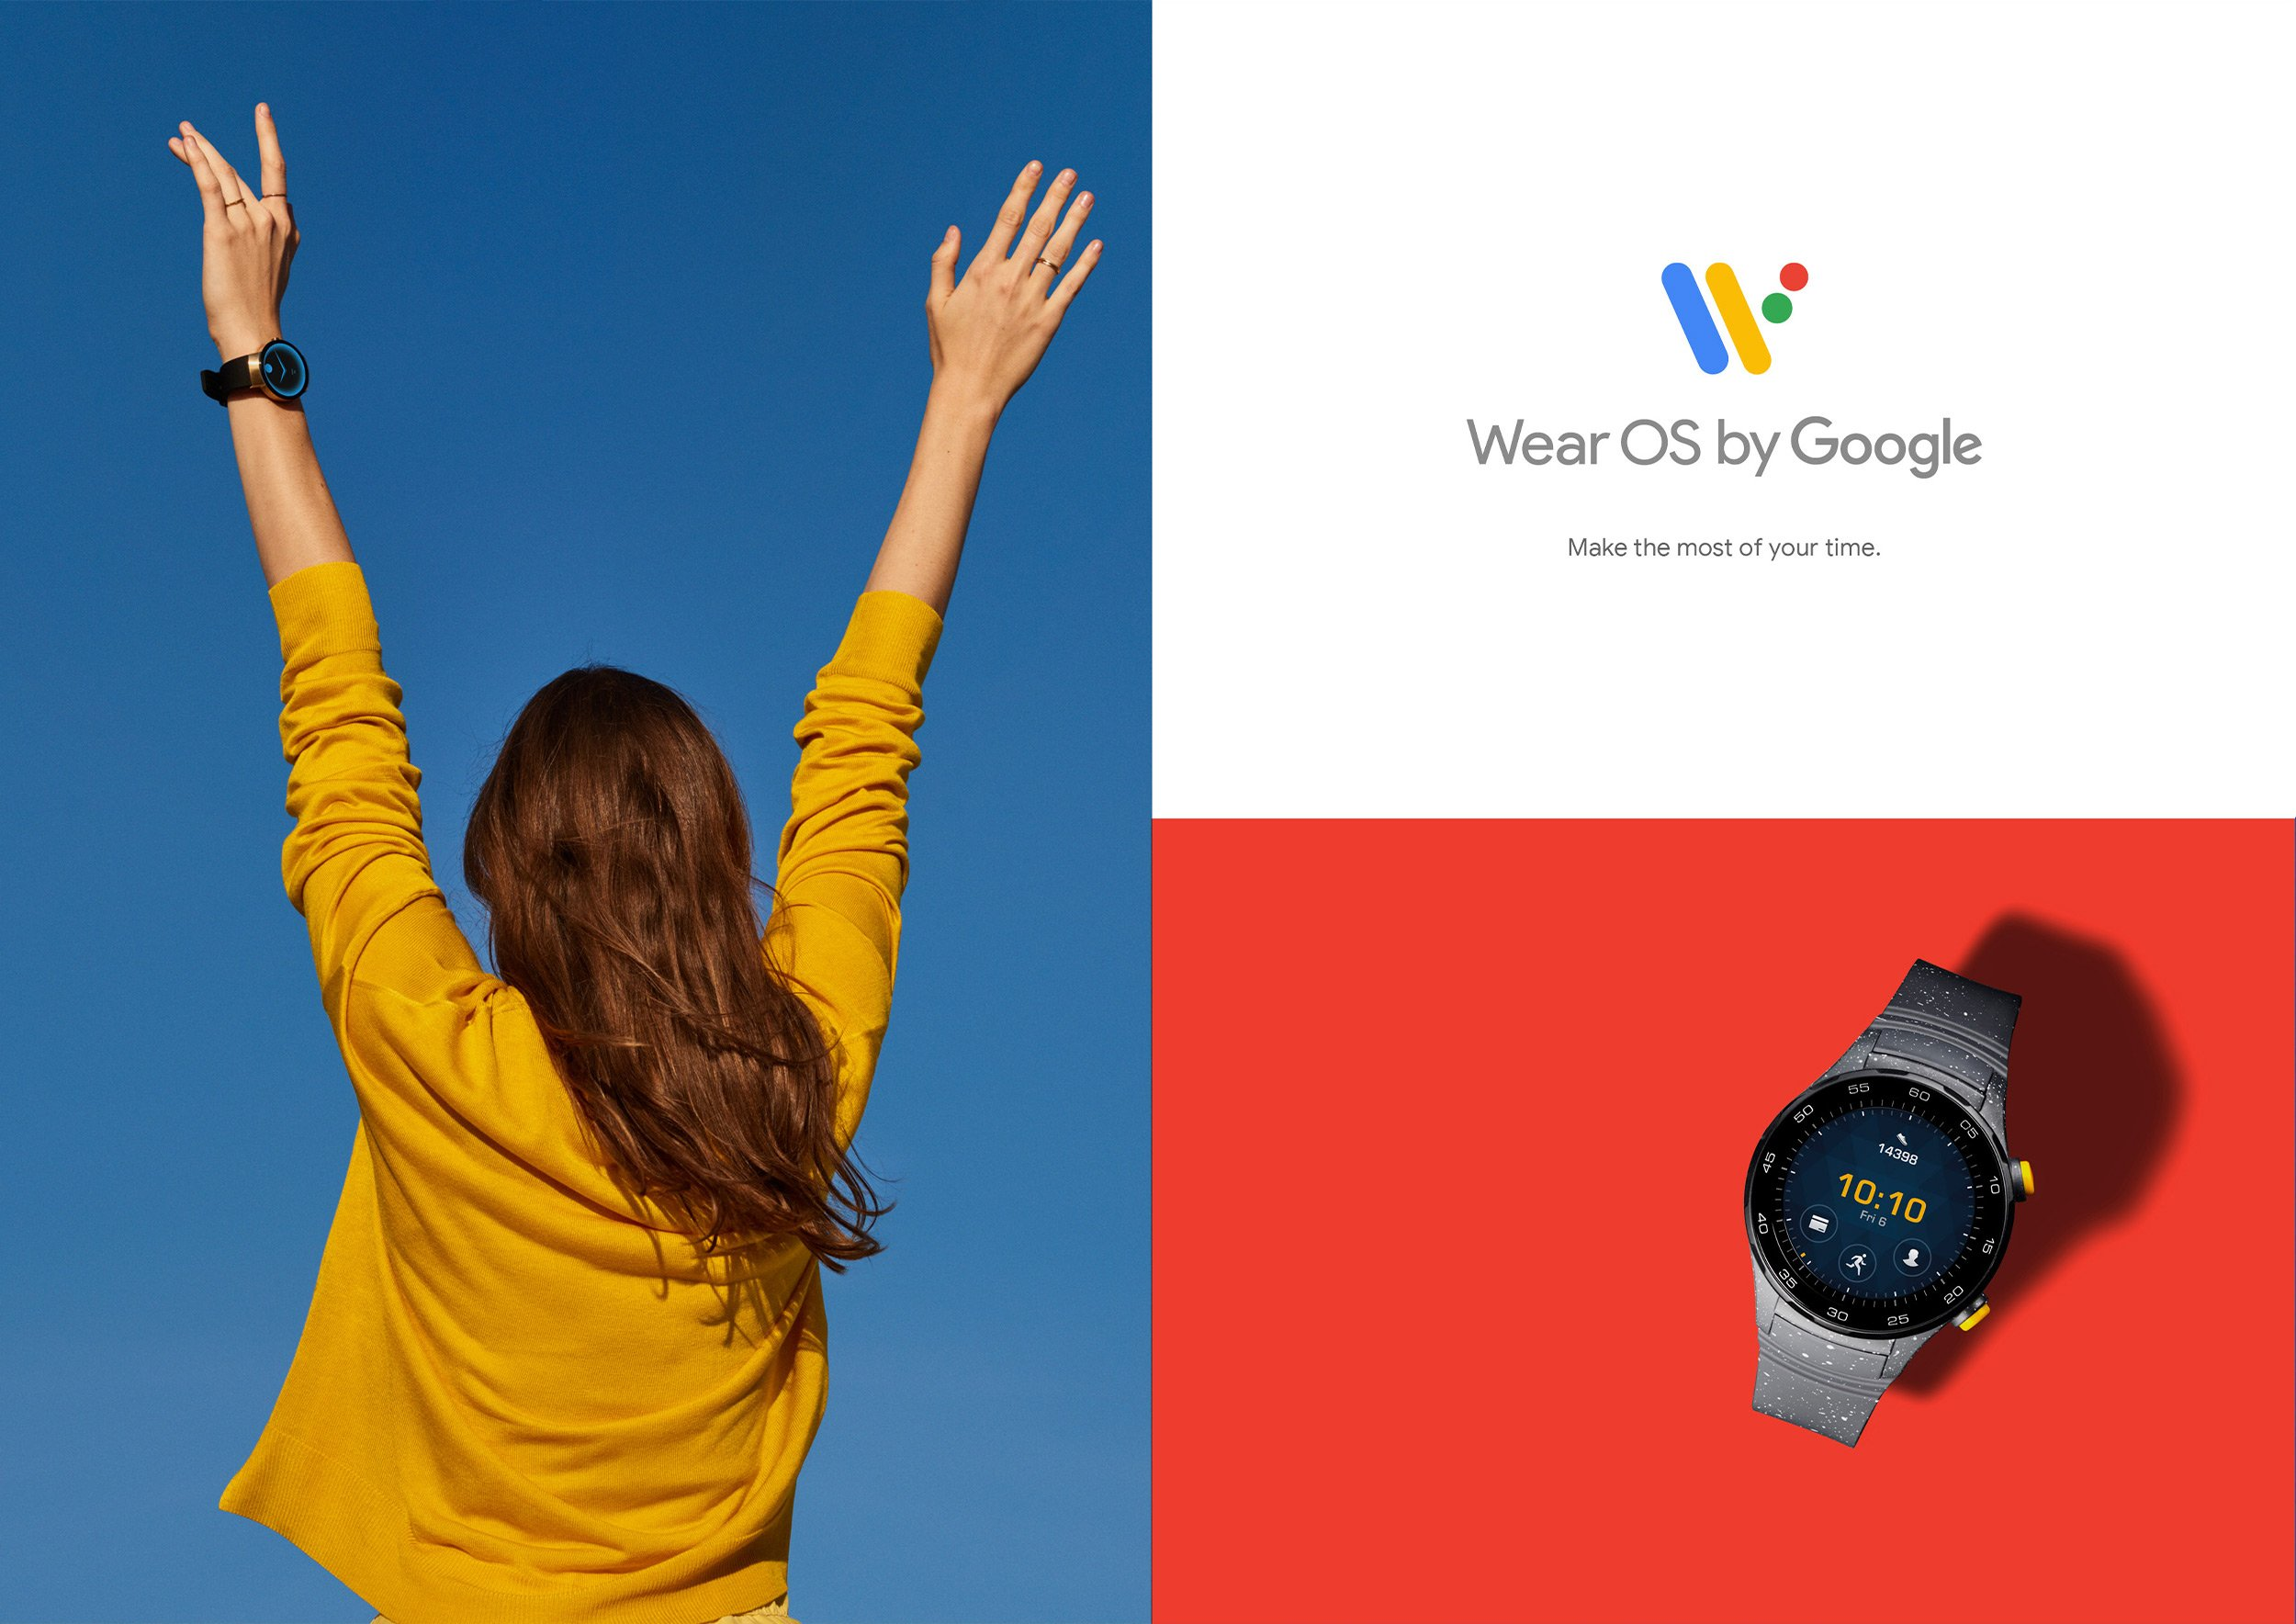 Wear OS by Google Campaign ad, make the most of your time. Design by RoAndCo